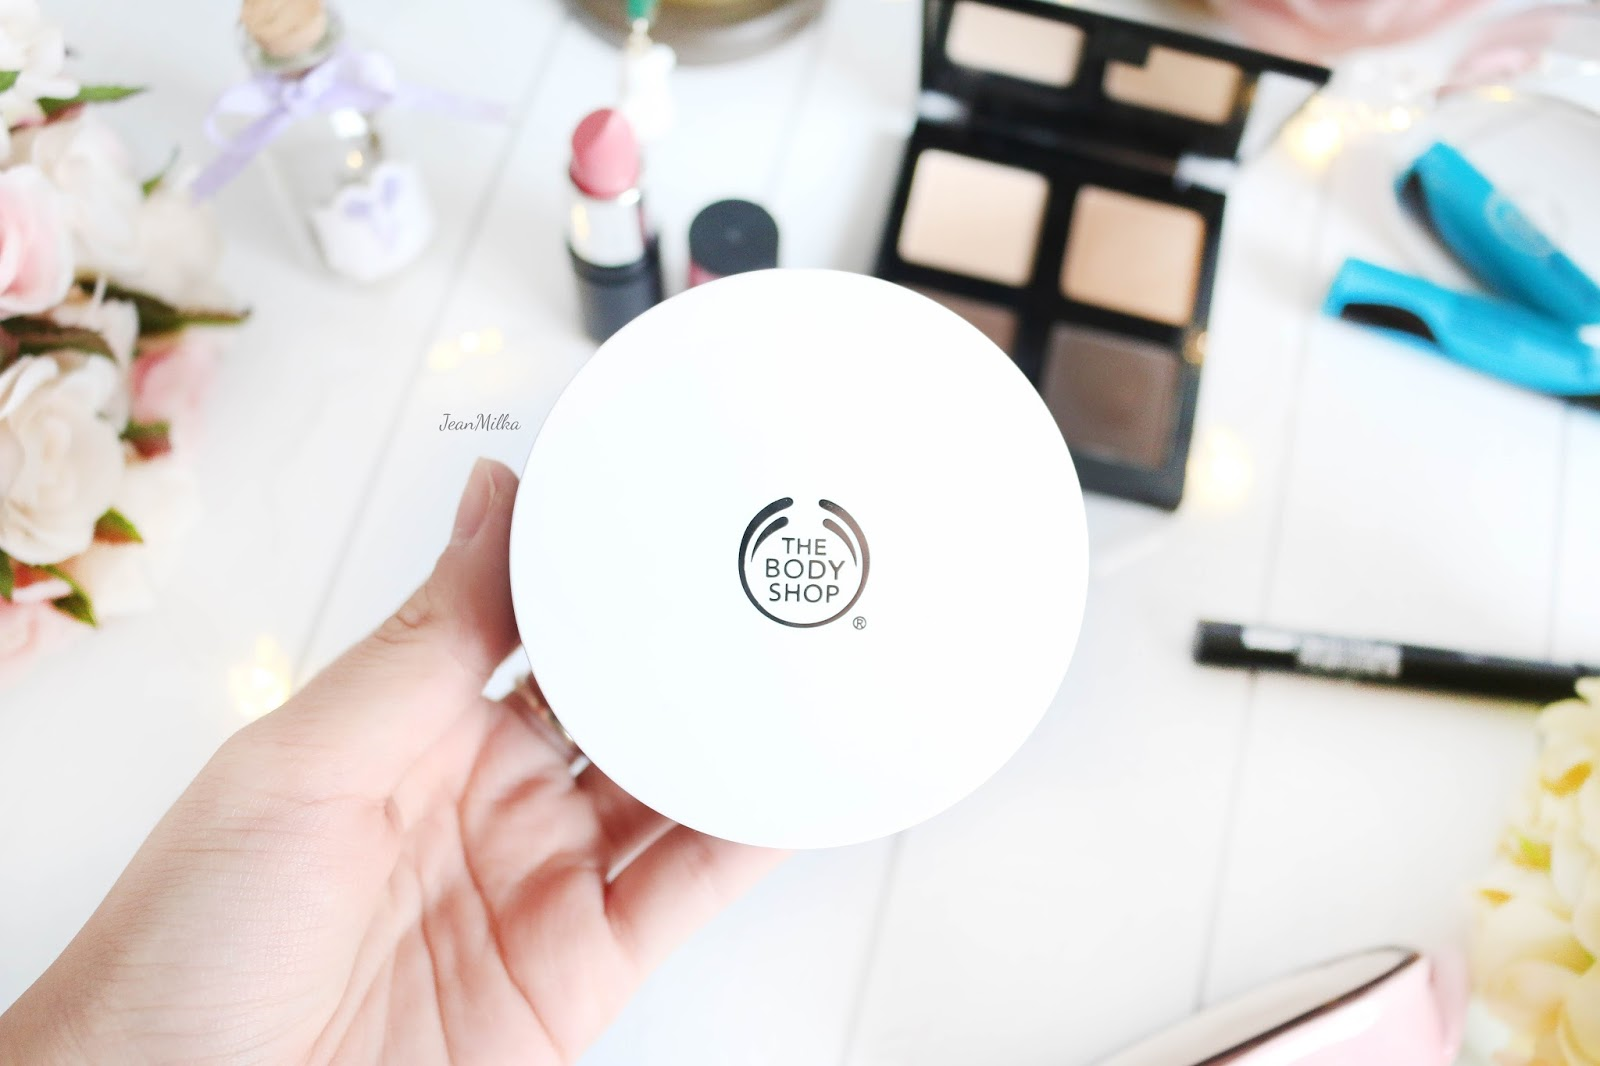 the body shop, body shop, body shop indonesia, the body shop indonesia, makeup natal, makeup, the body shop makeup, makeup collection, christmas makeup, the body shop makeup review